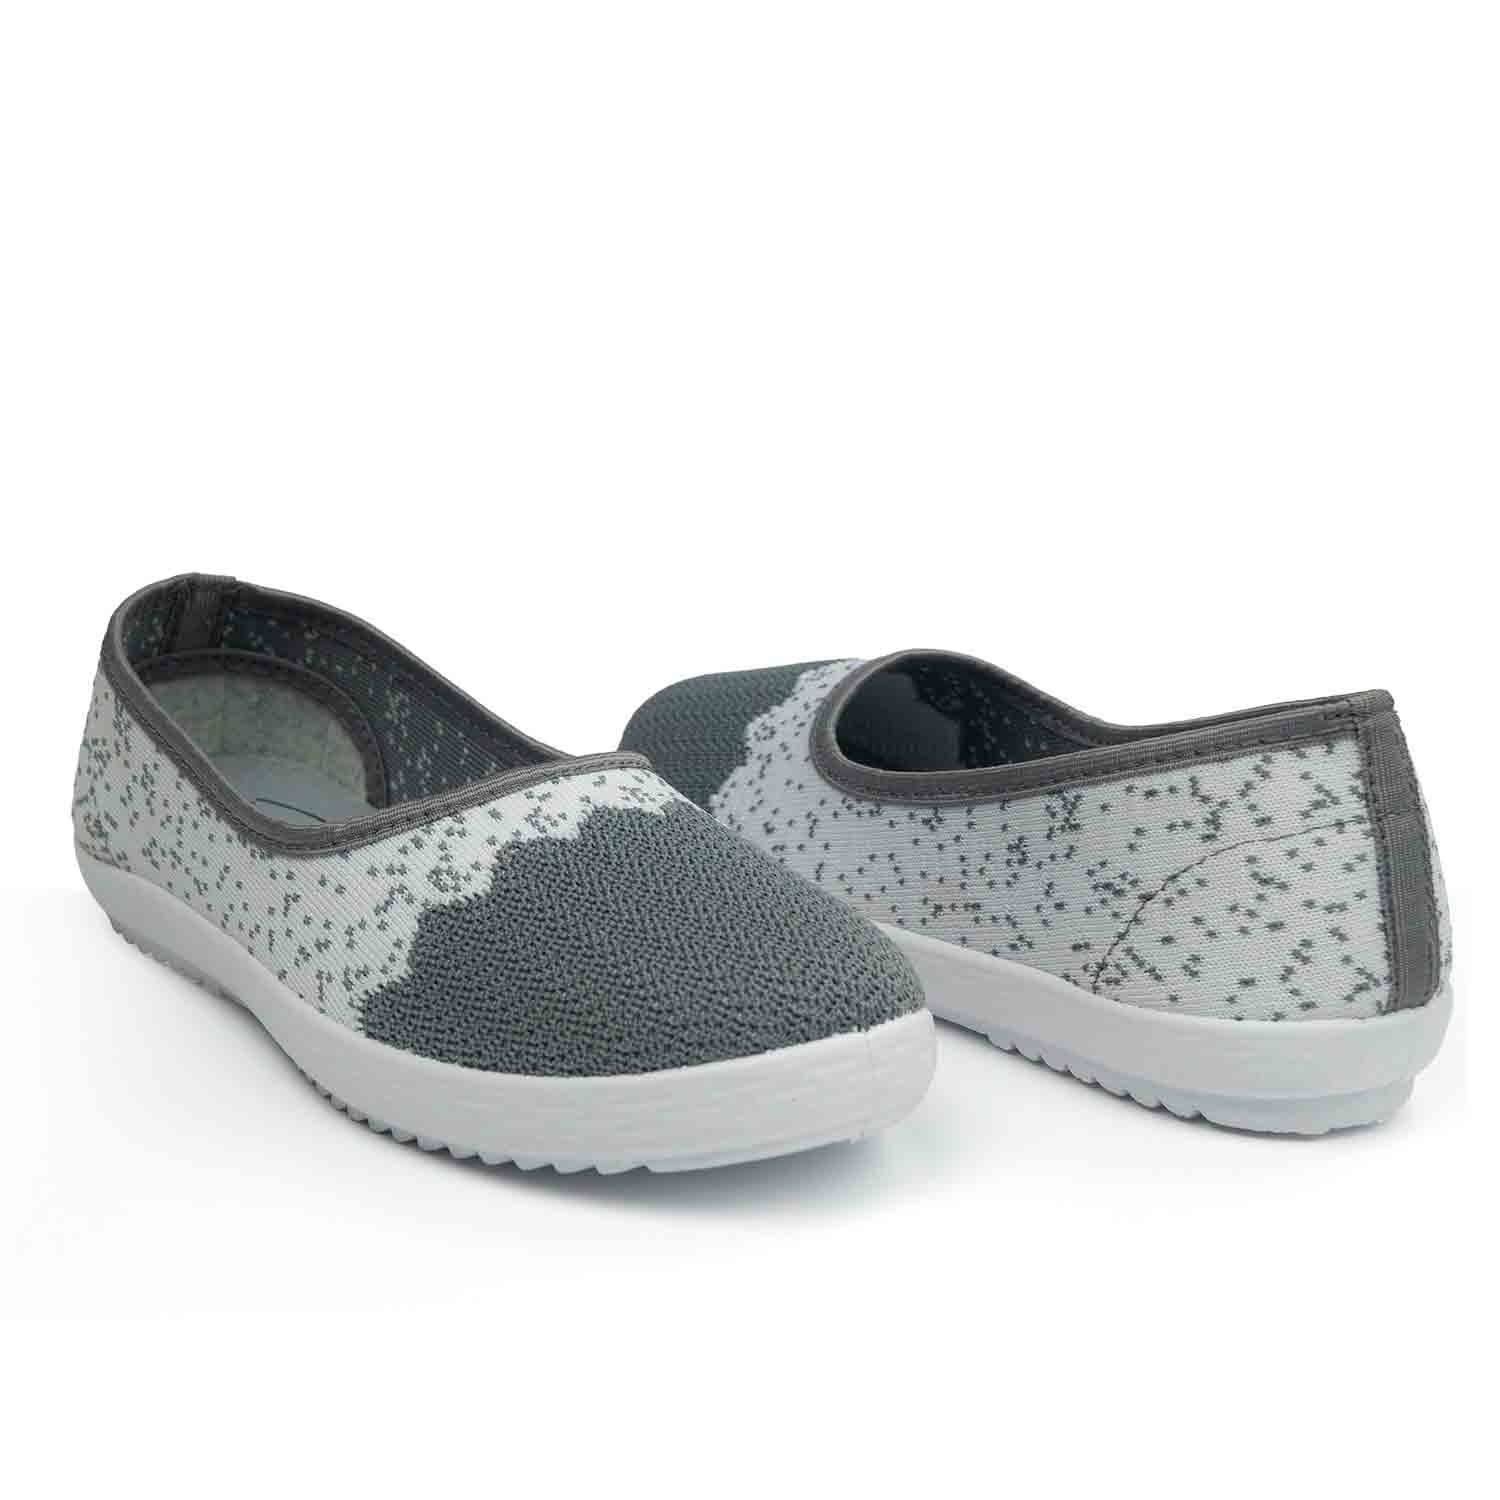 Flairknit Women Slip-ons shoes